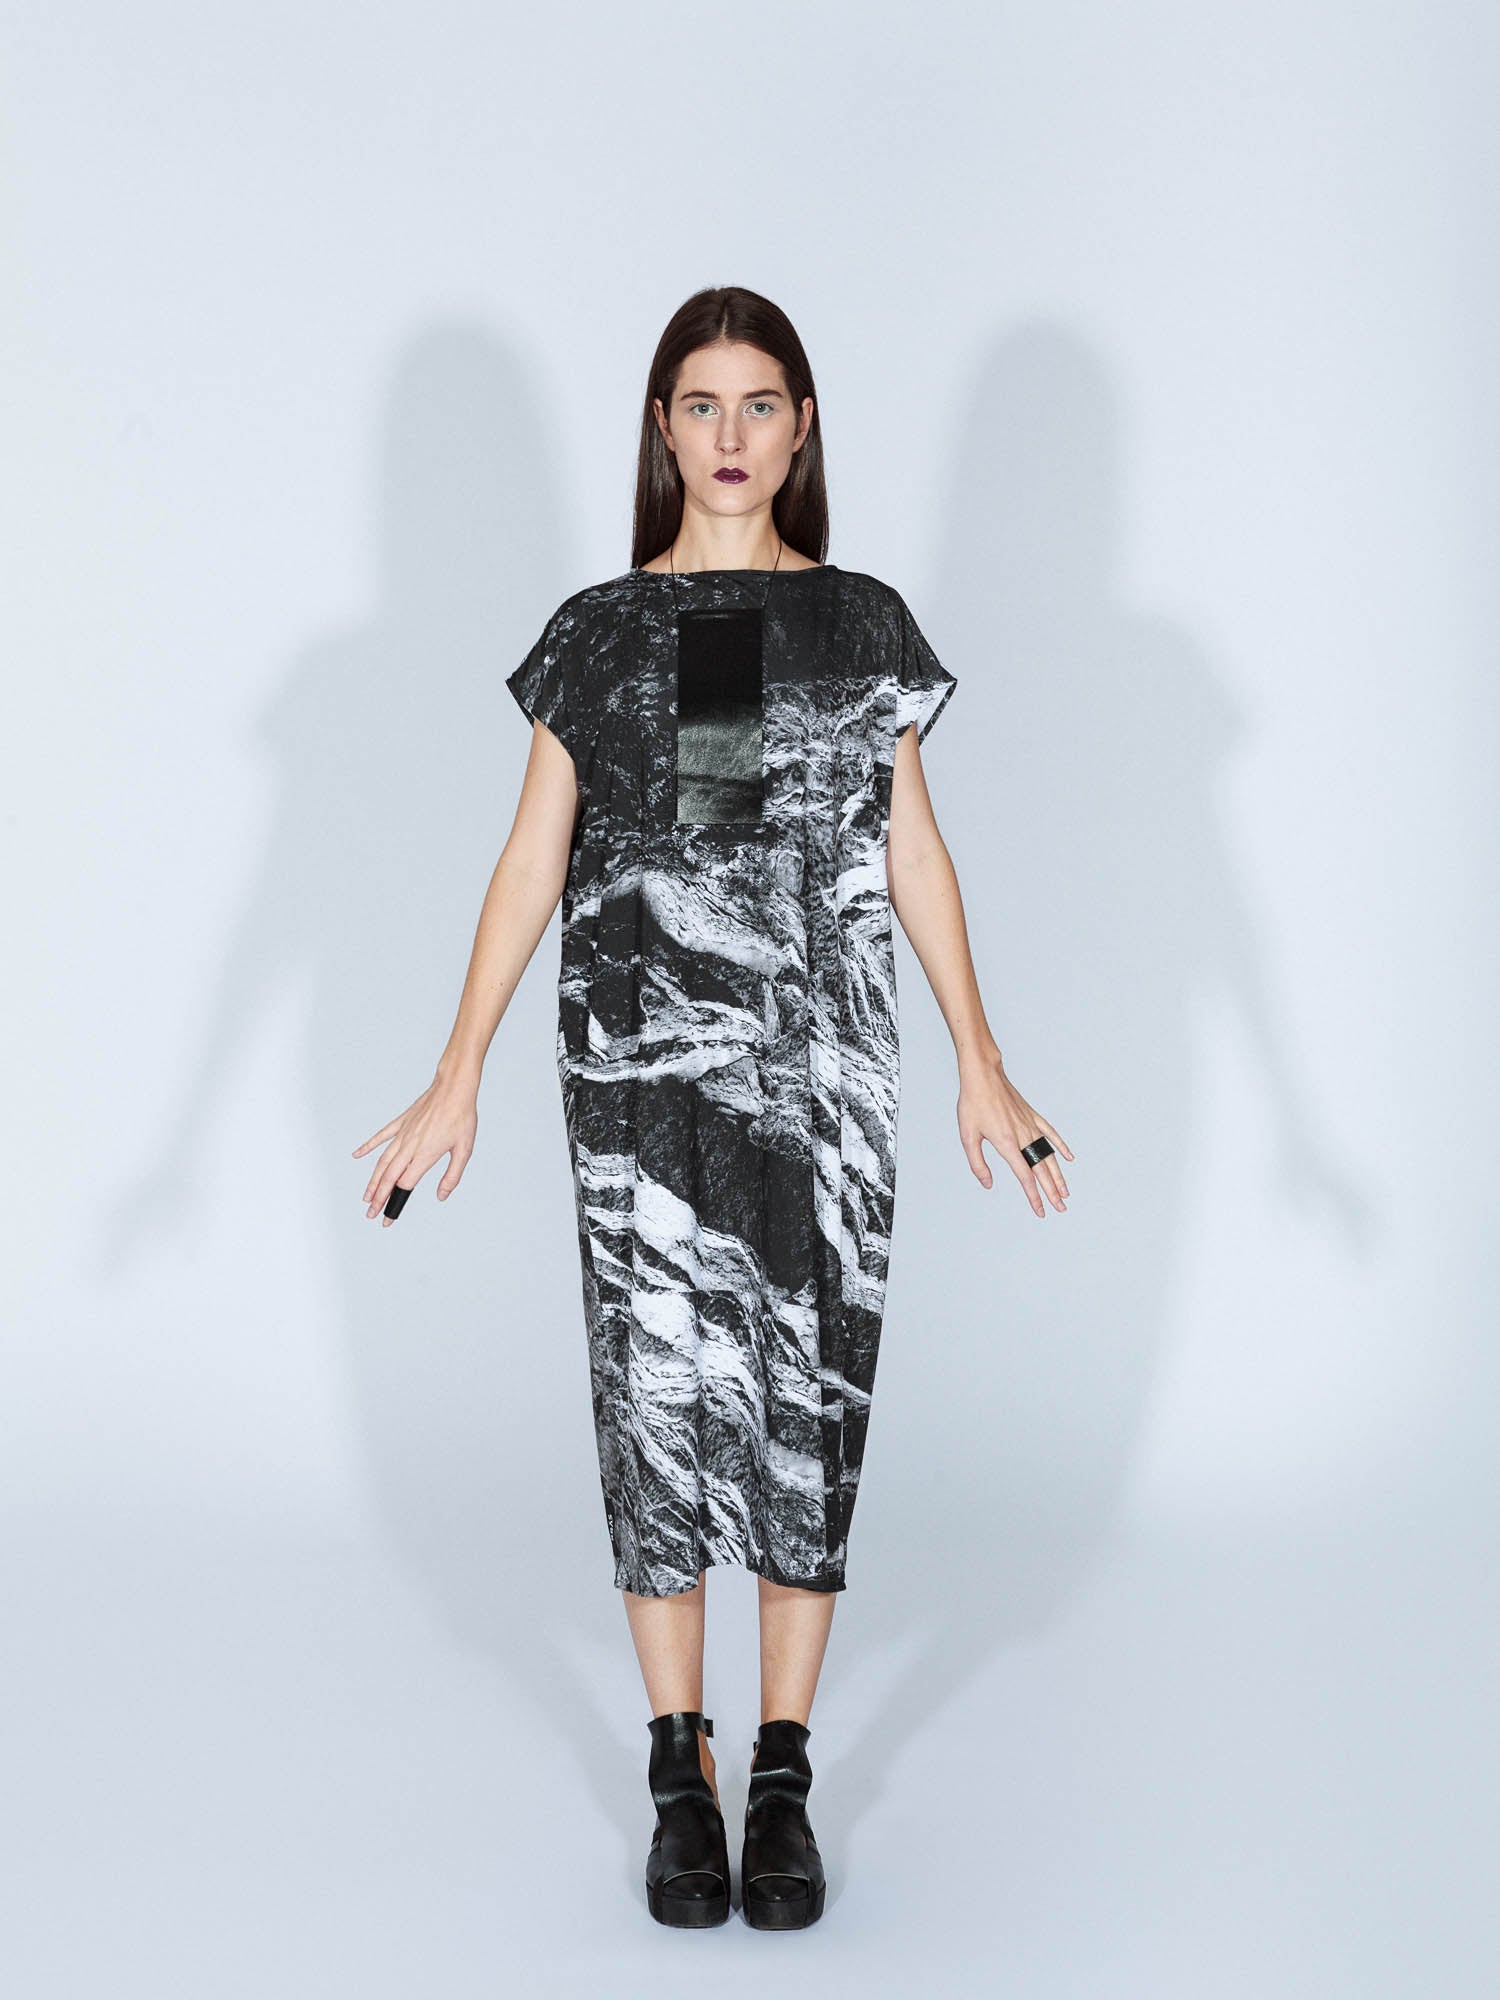 MONOLITH DRESS ROCKS LONG